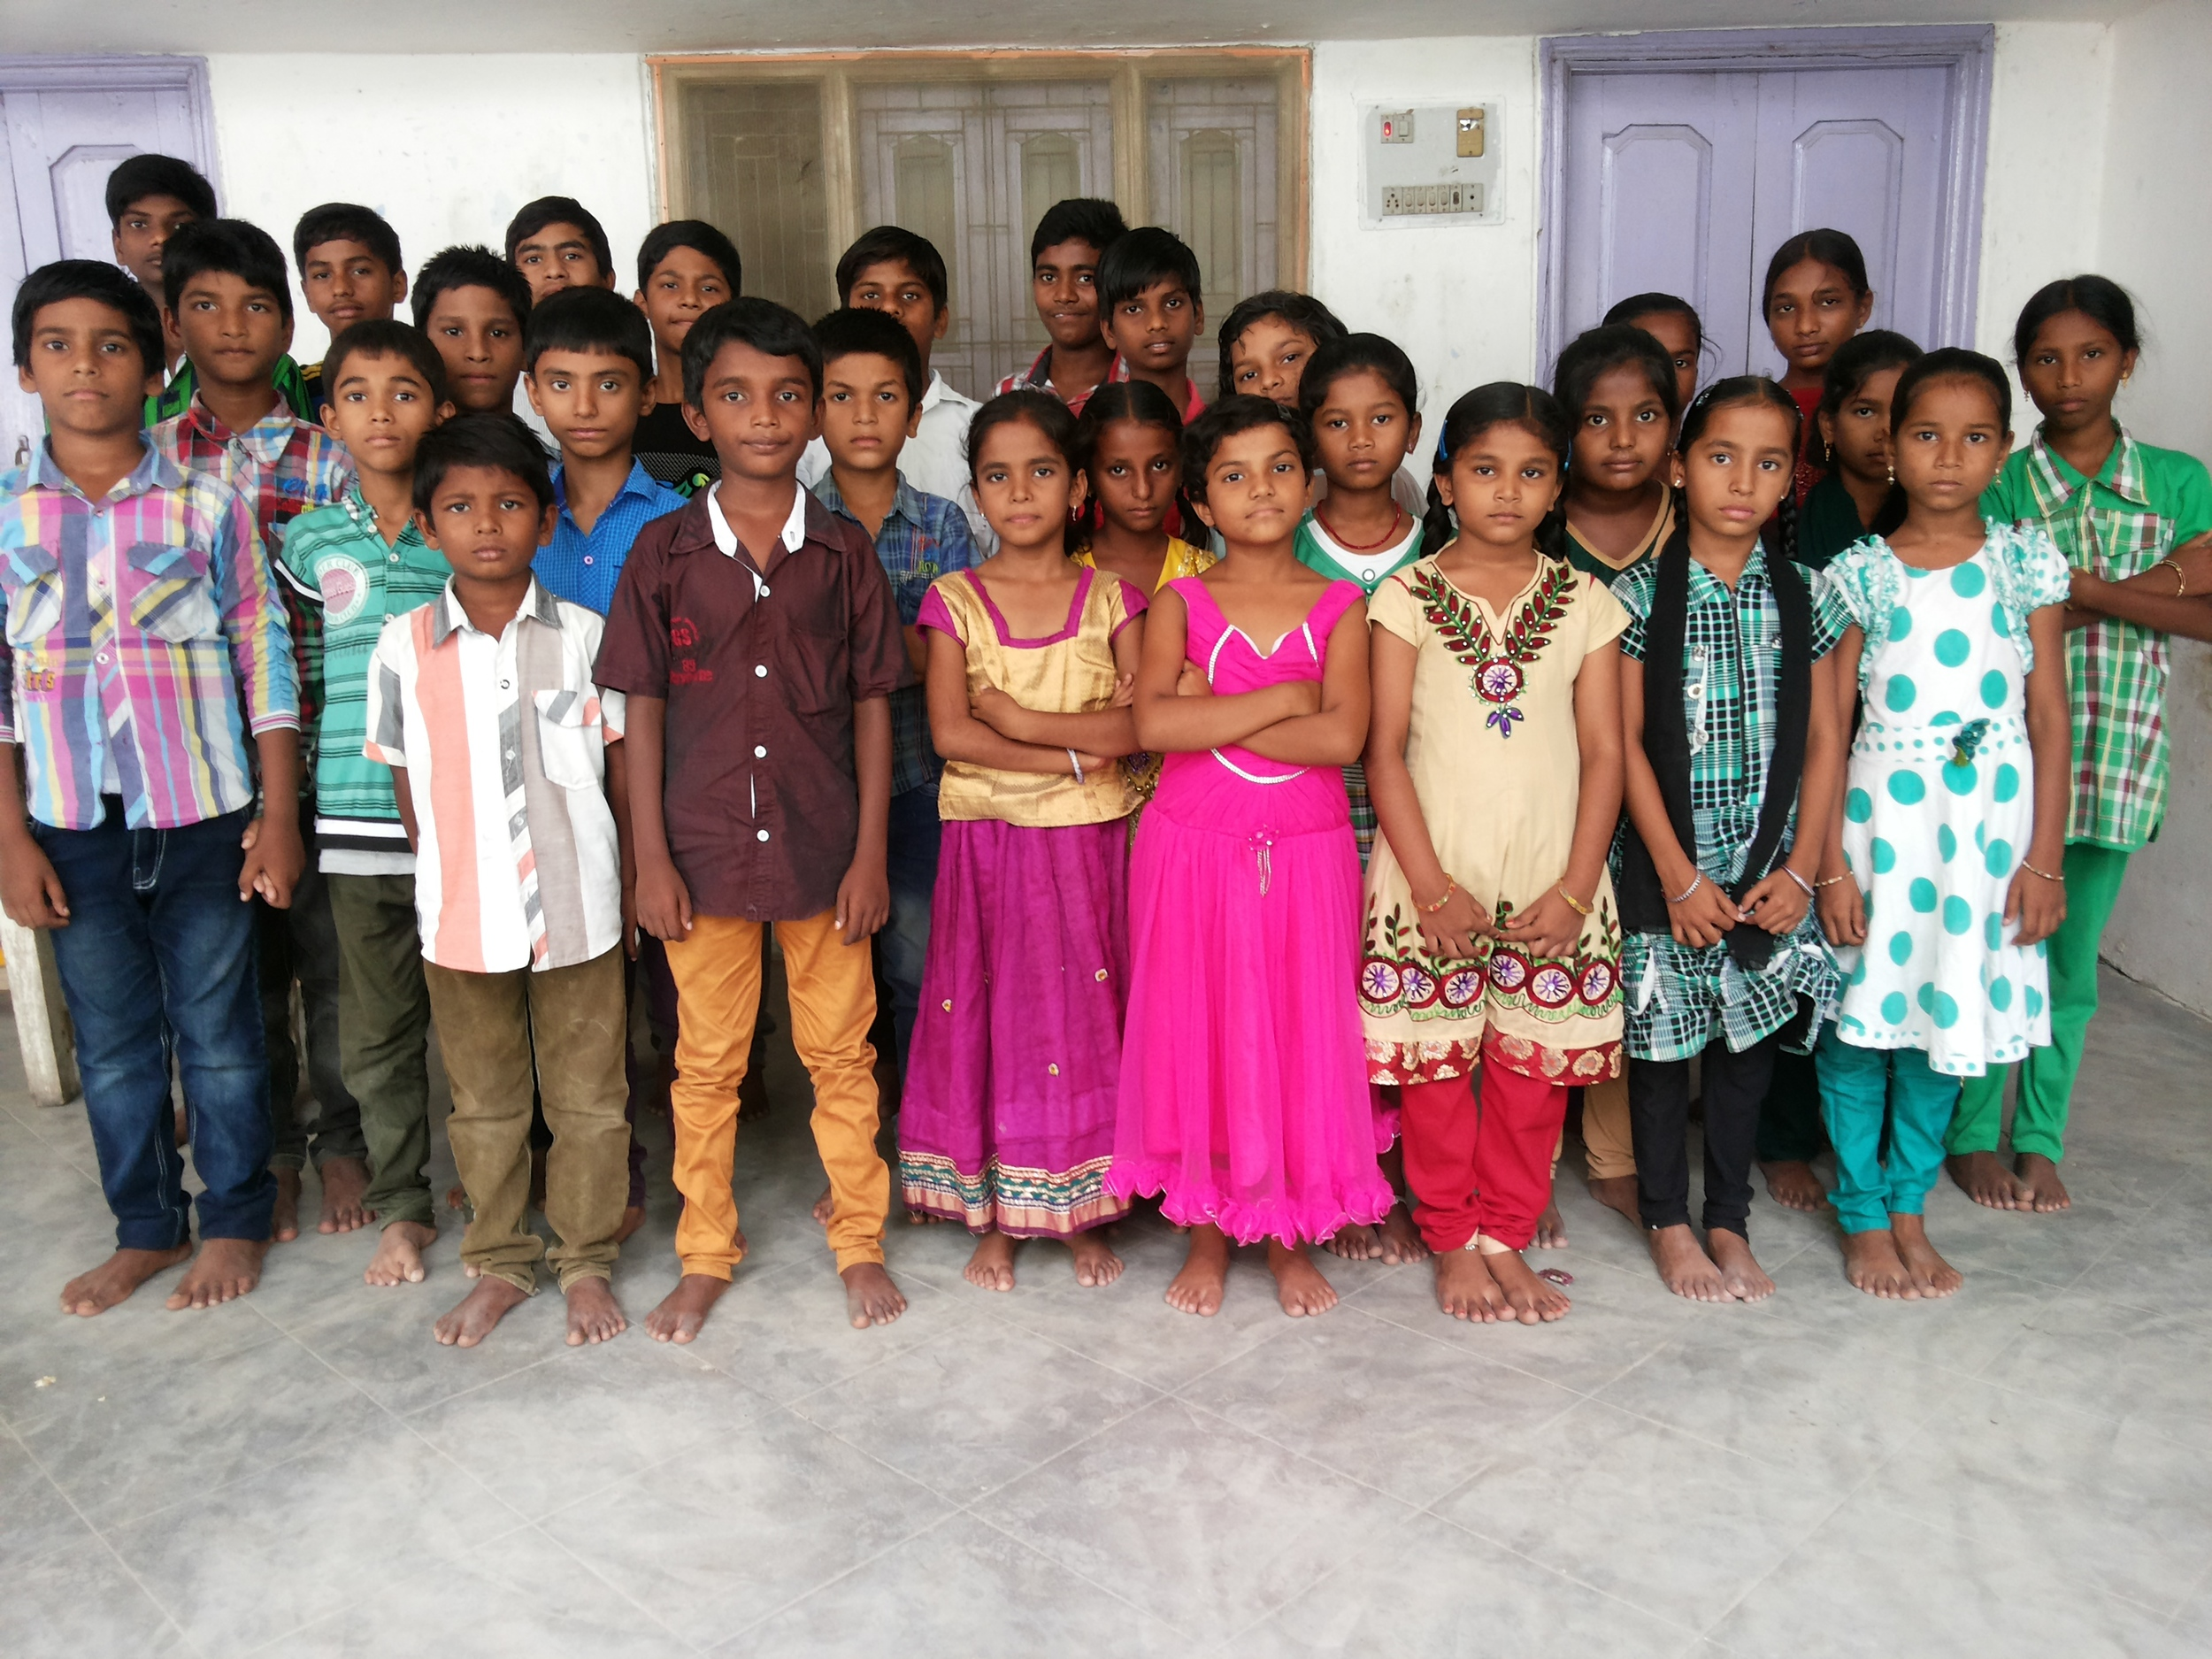 2014: The home is growing and God is blessing these children with a safe place to live and be cared for.